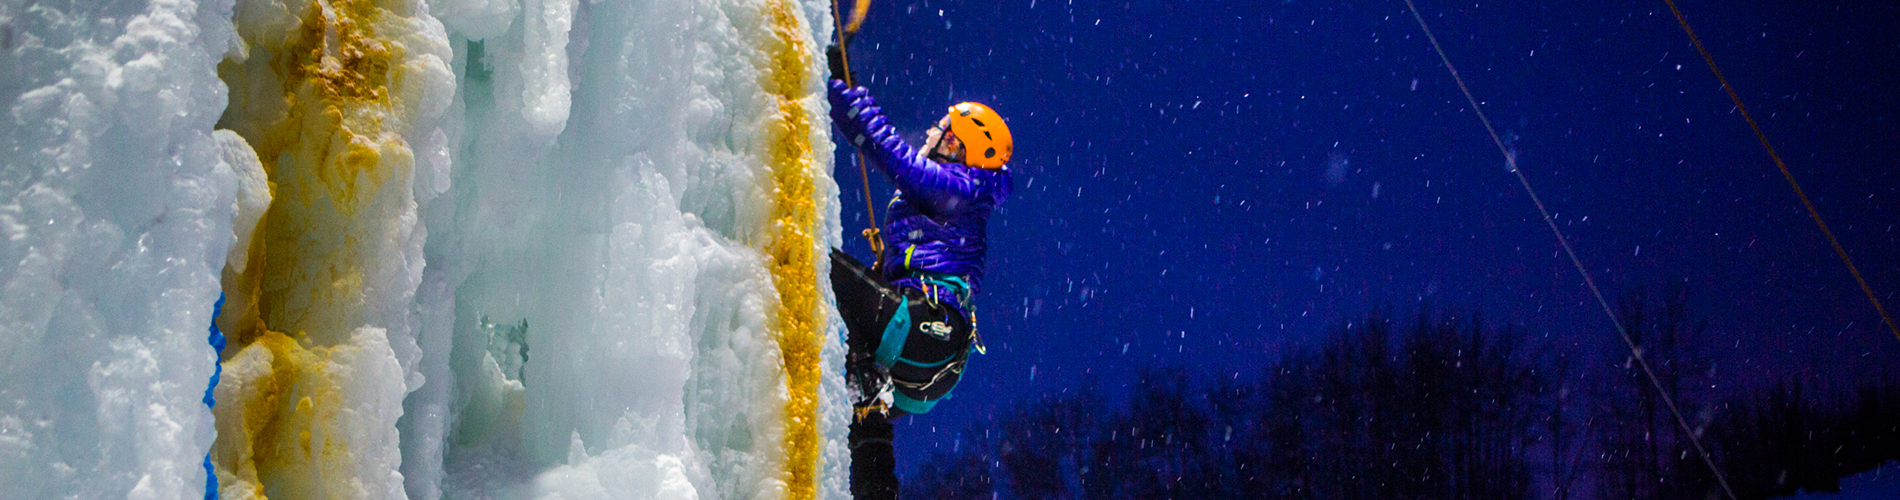 Climbing the outdoor ice wall